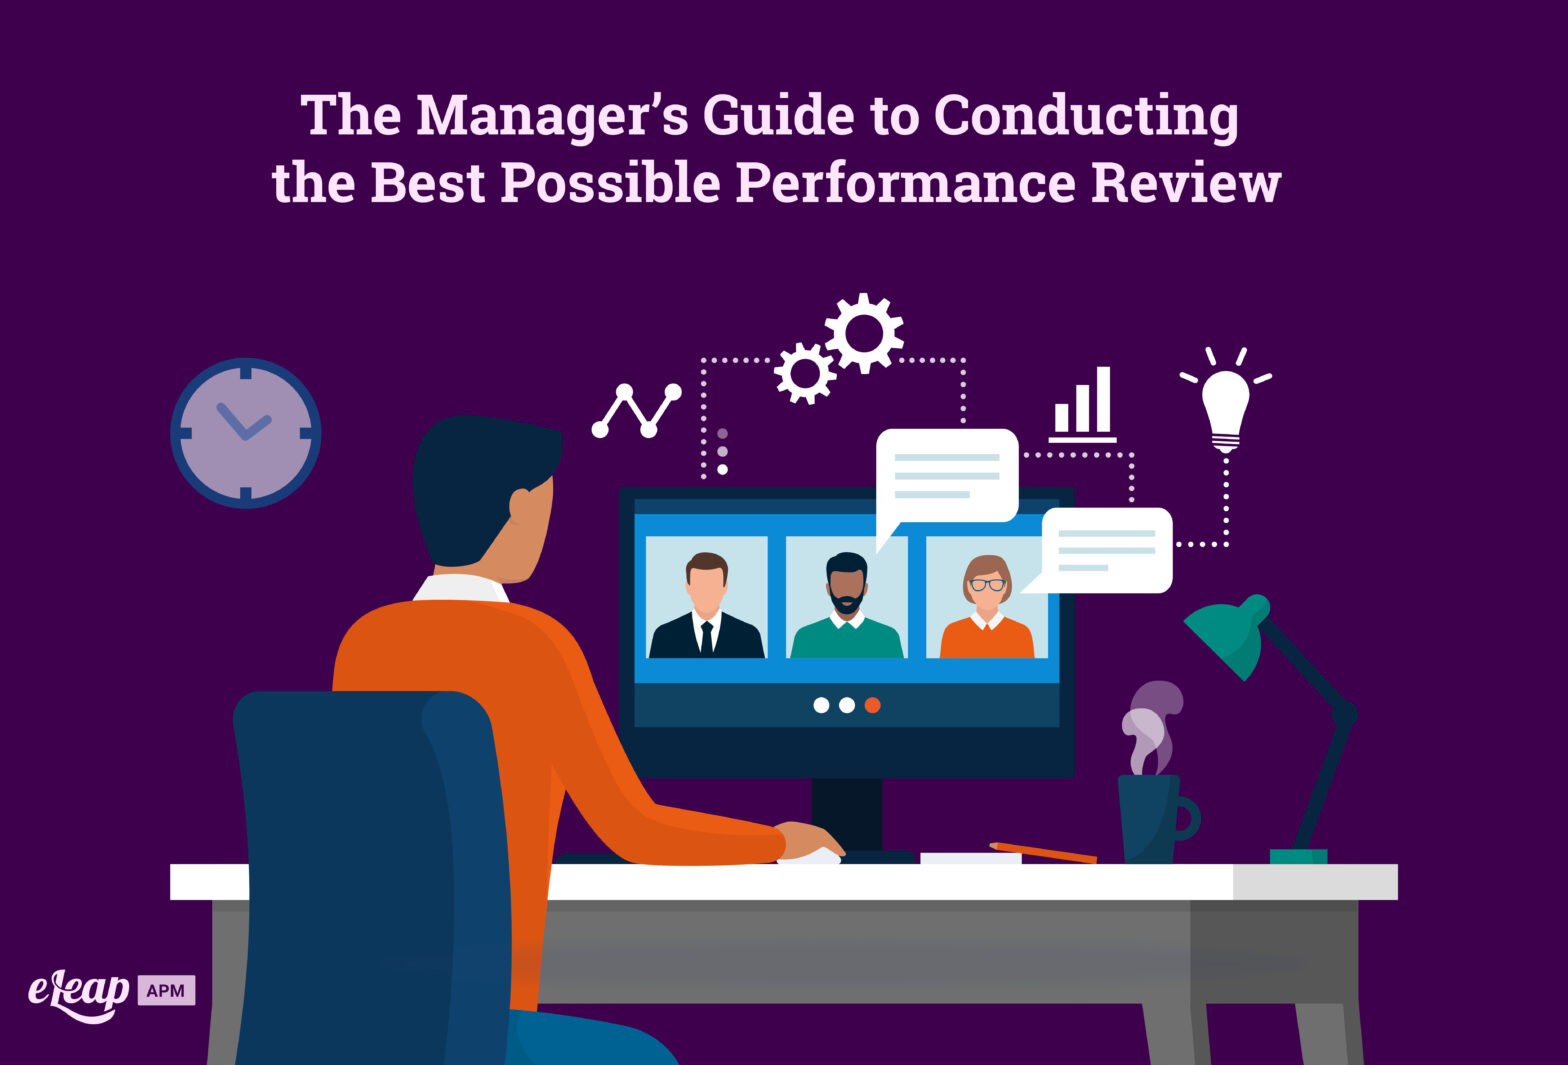 The Manager's Guide to Conducting the Best Possible Performance Review